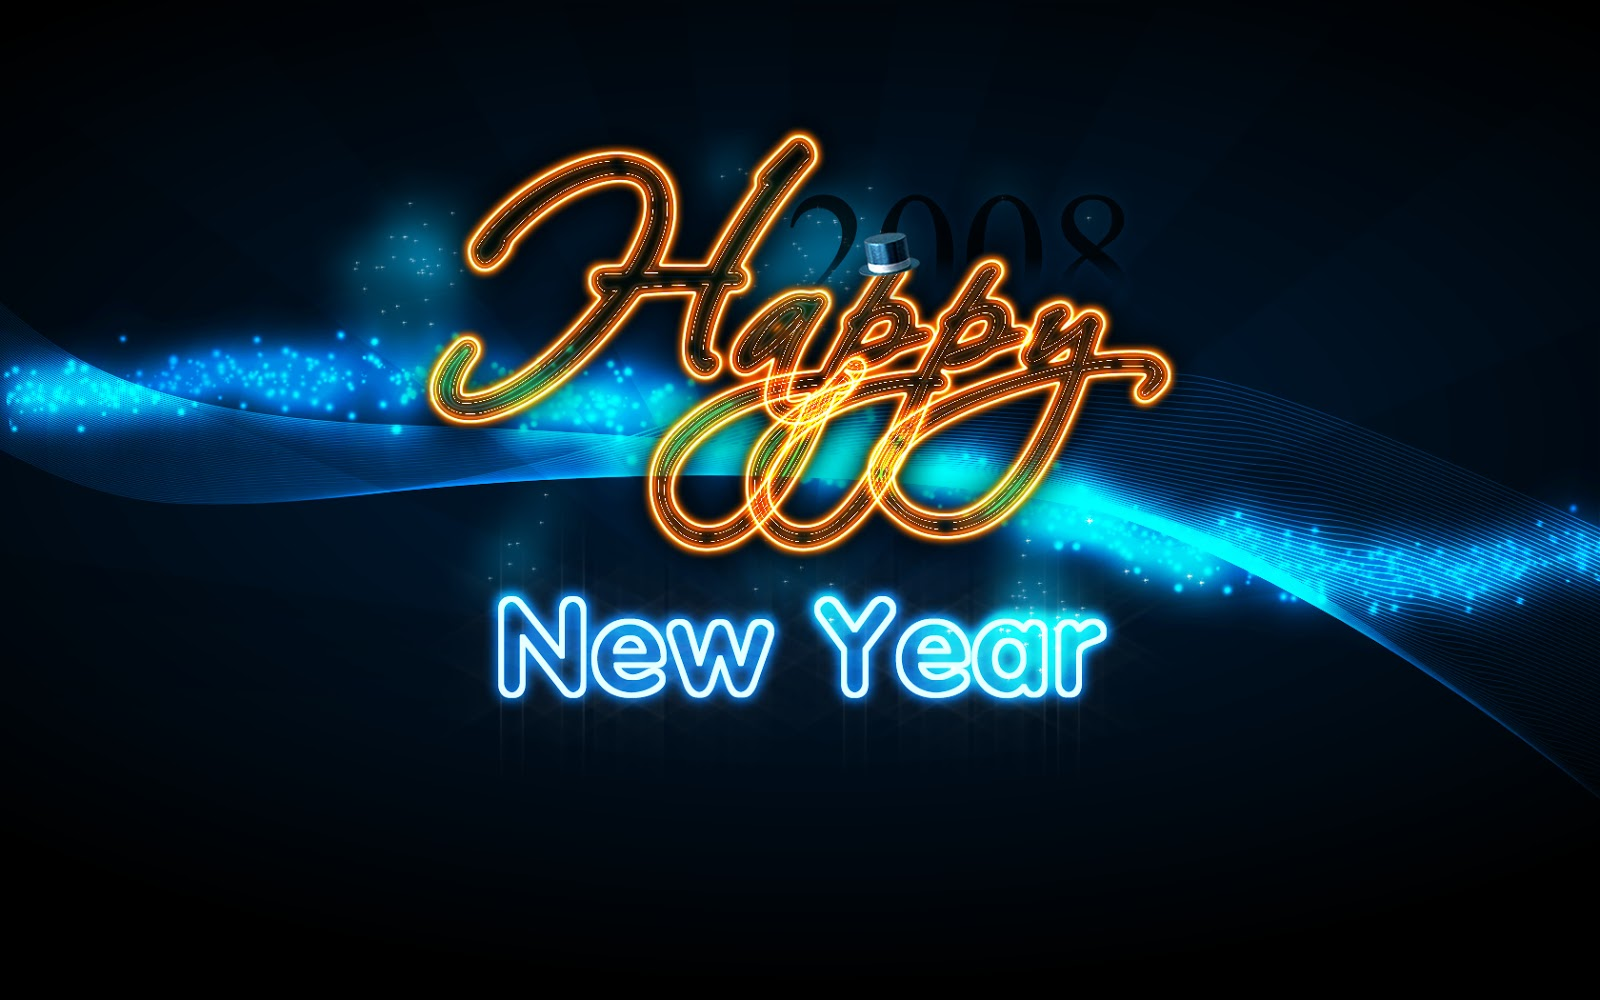 Happy new year 2016 wallpapers new year 2016 pctures hd for New design wallpaper 2016